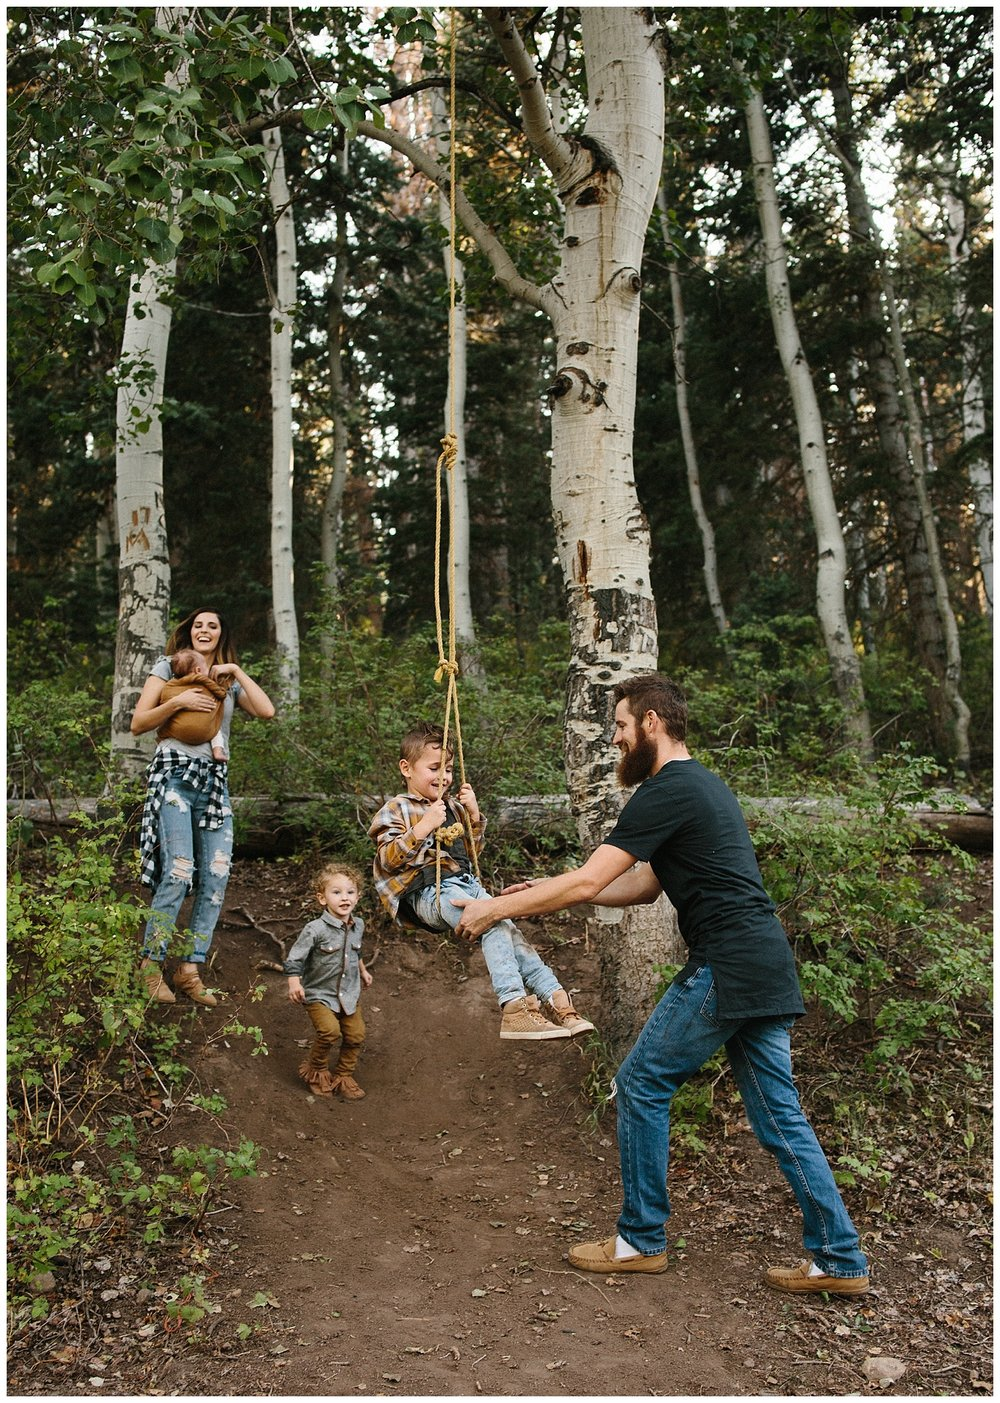 family+lifestyle+photographer+utah+mountains+dayna+grace_0079.jpg